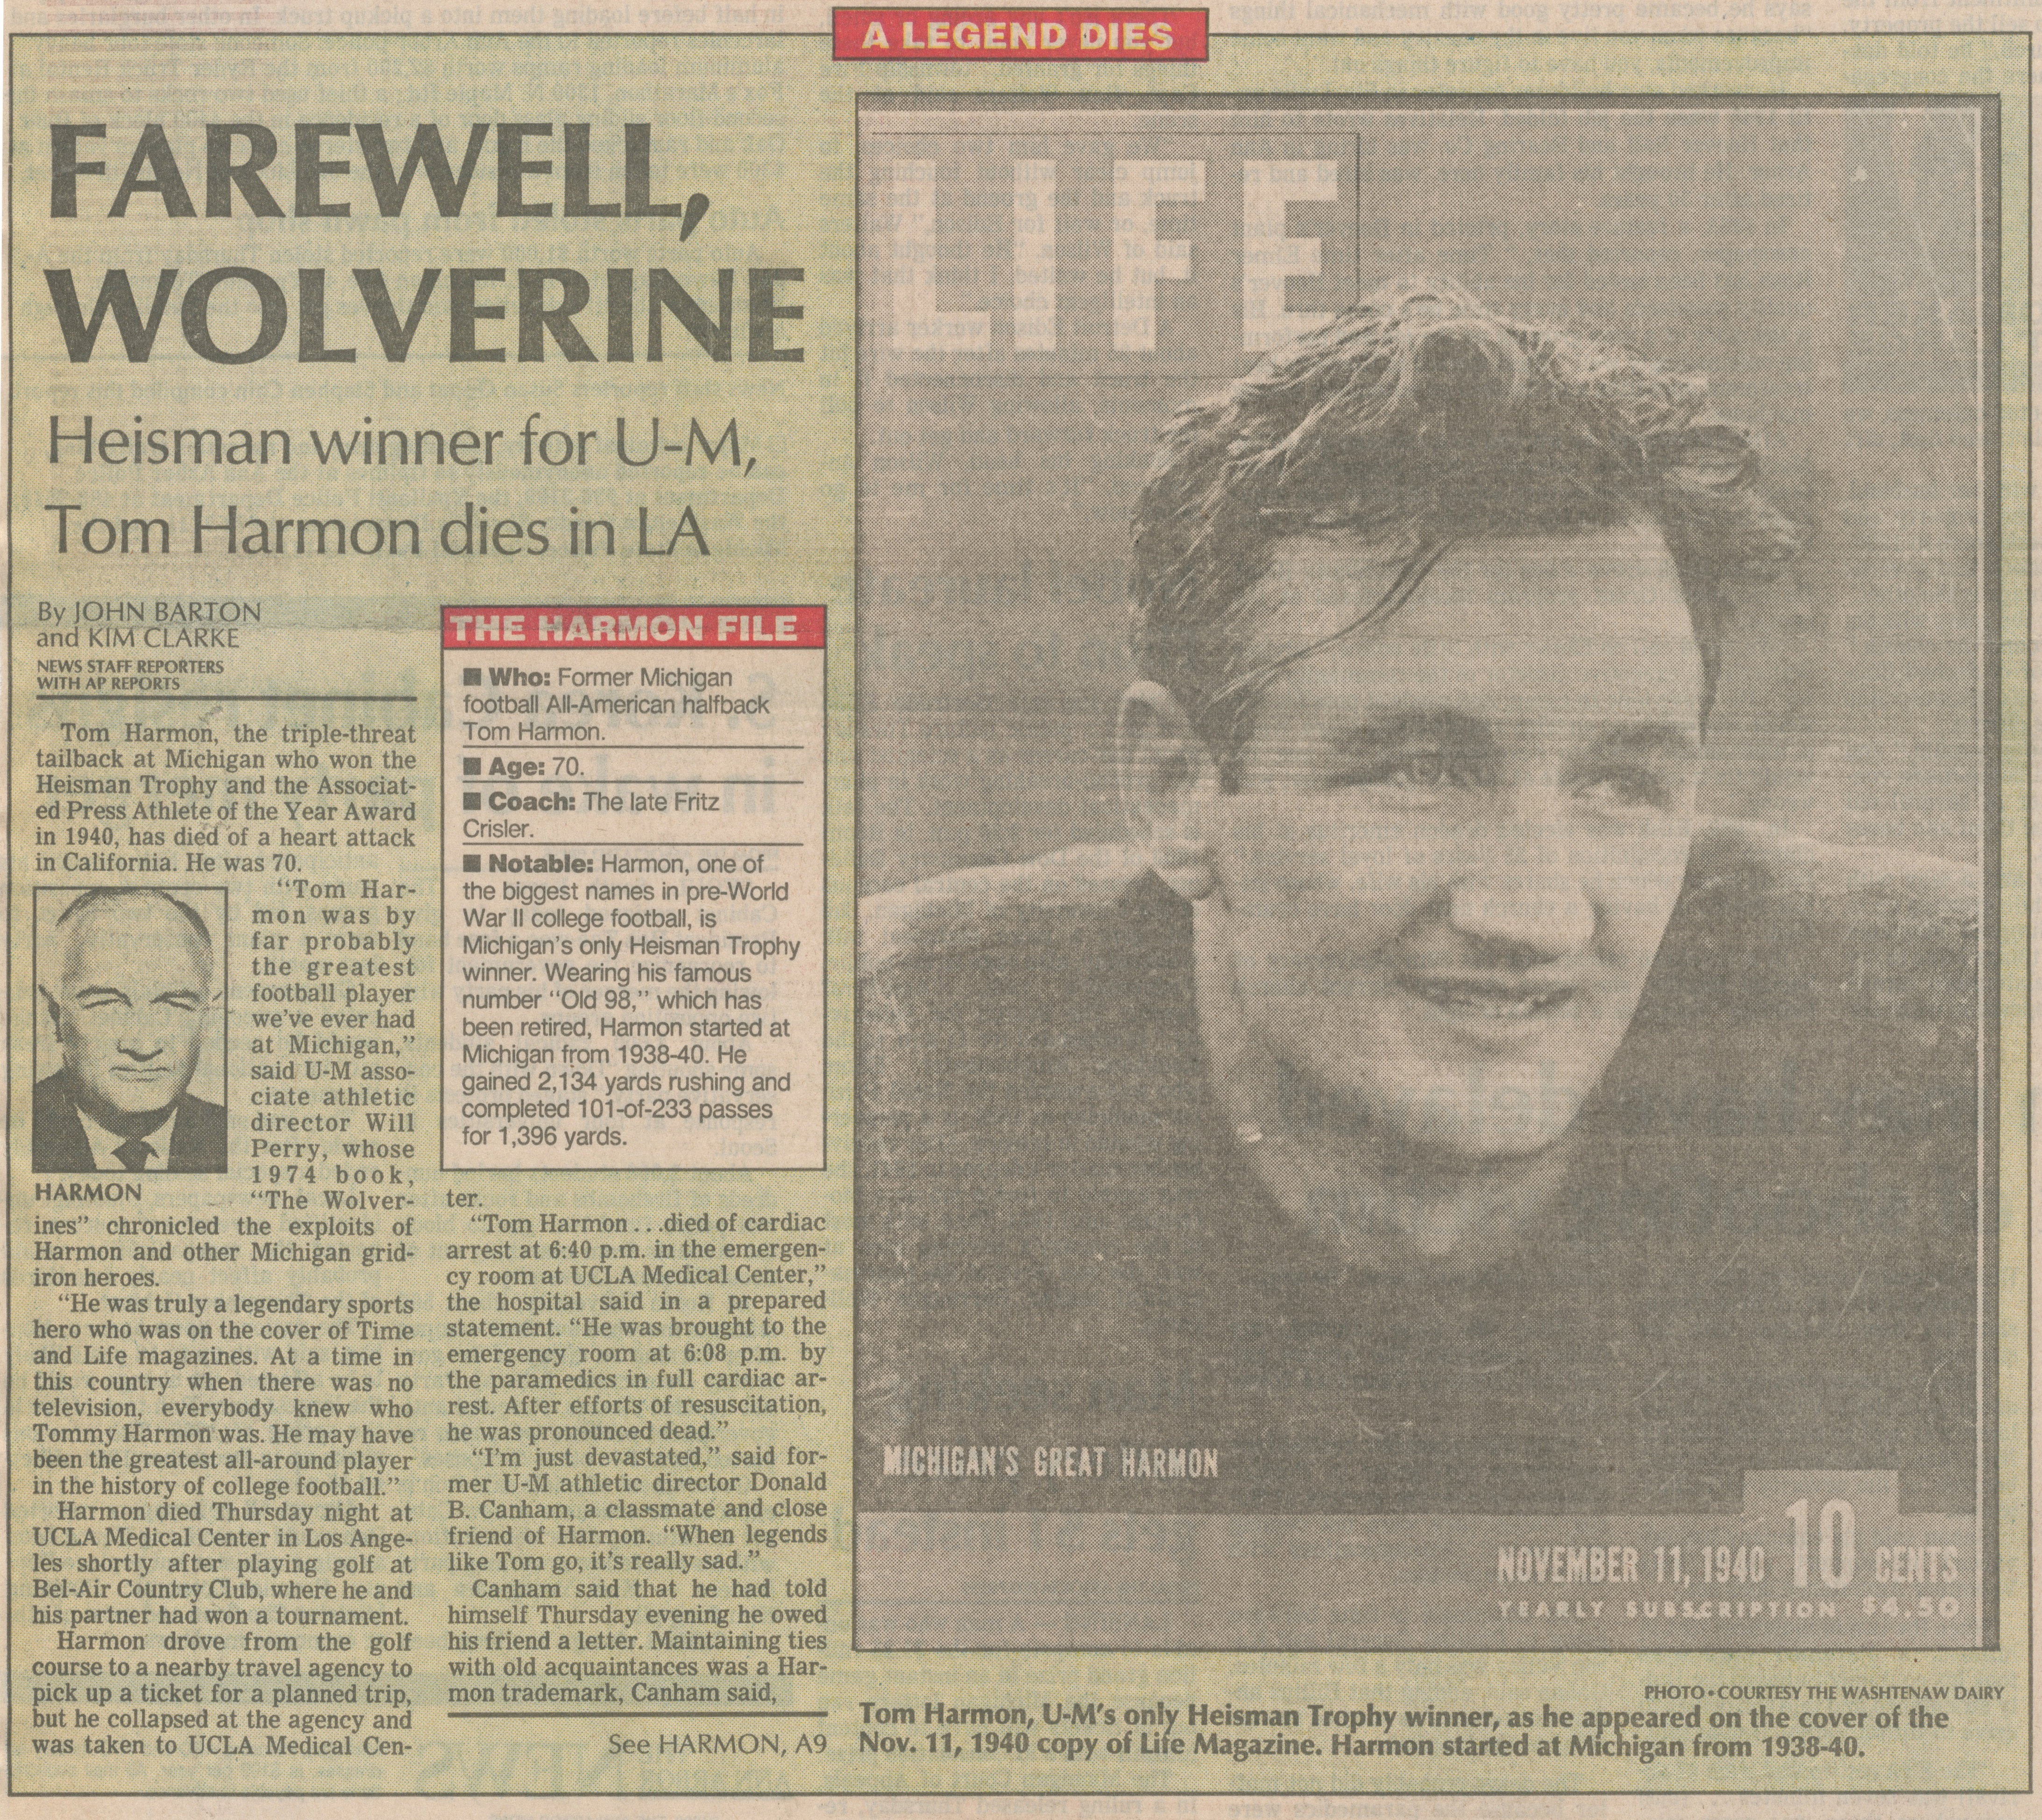 A Legend Dies - Farewell, Wolverine - Heisman Winner For U-M, Tom Harmon Dies In LA image